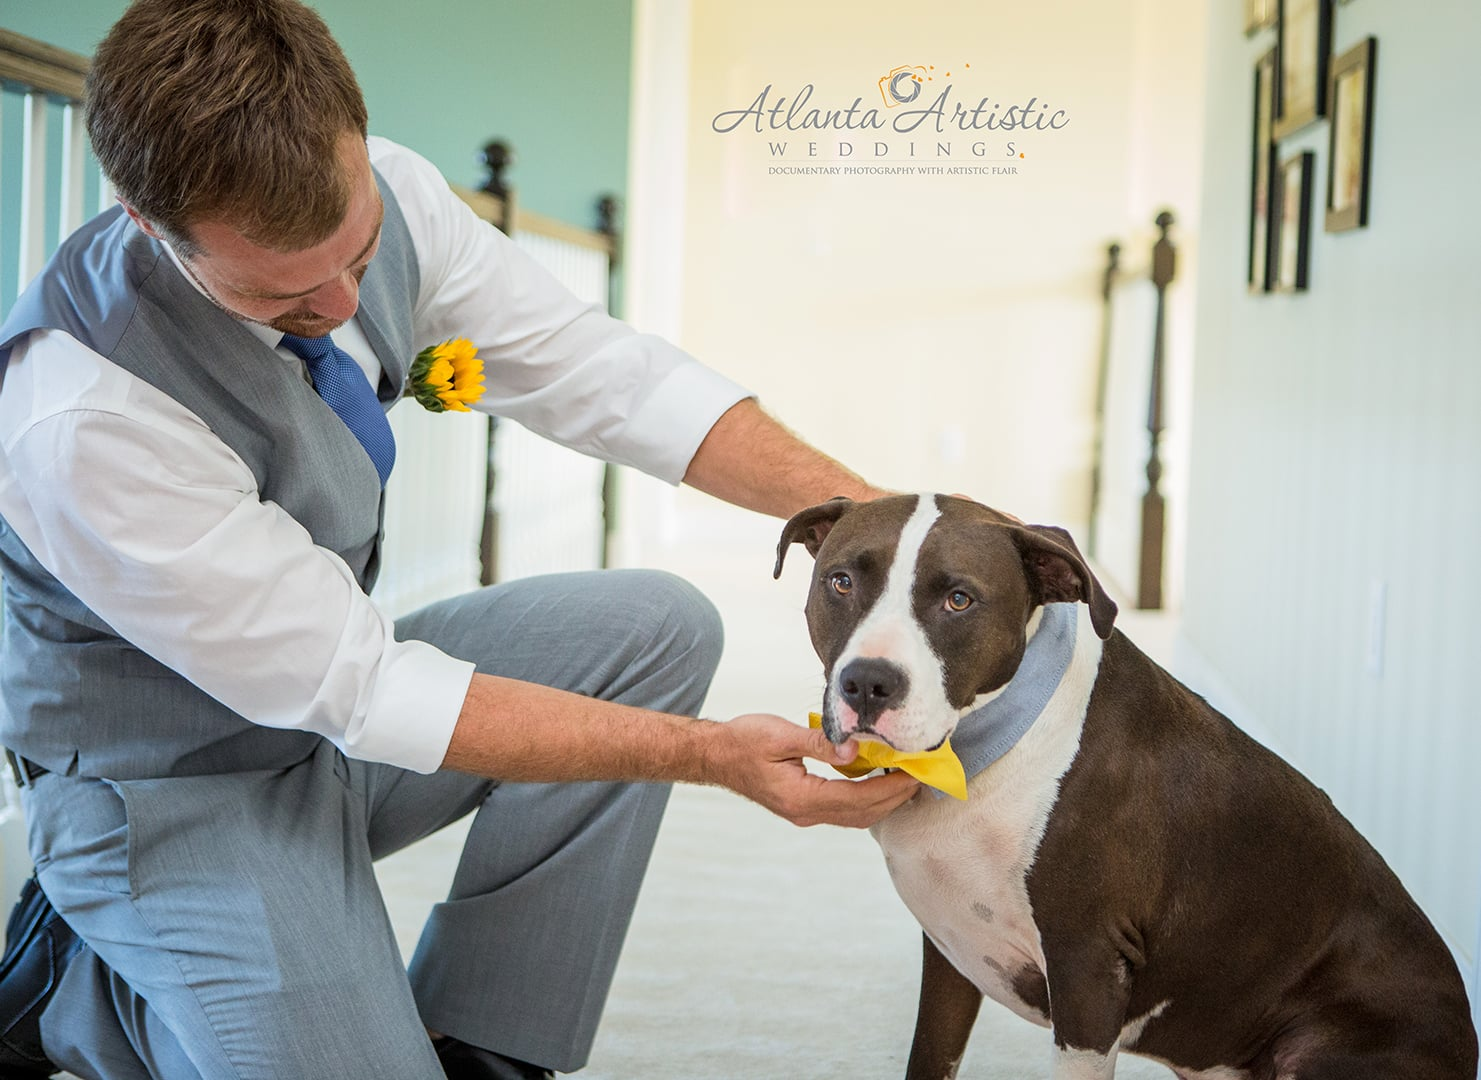 Dog is best man at wedding - by Atlanta Wedding Photographers at  www.atlantaartisticweddings.com